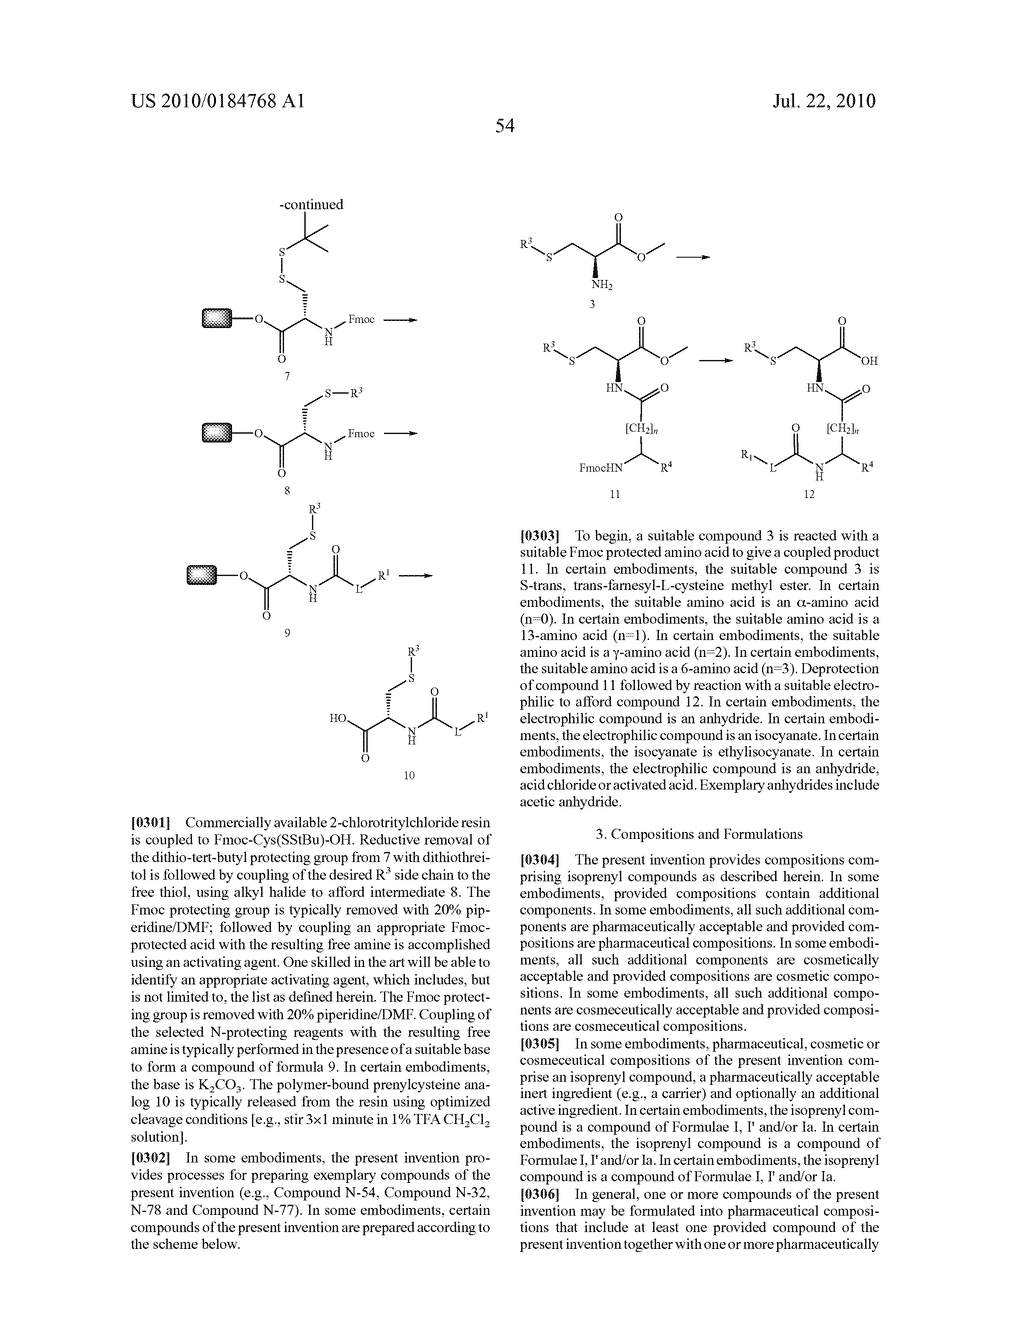 Isoprenyl Compounds and Methods Thereof - diagram, schematic, and image 69